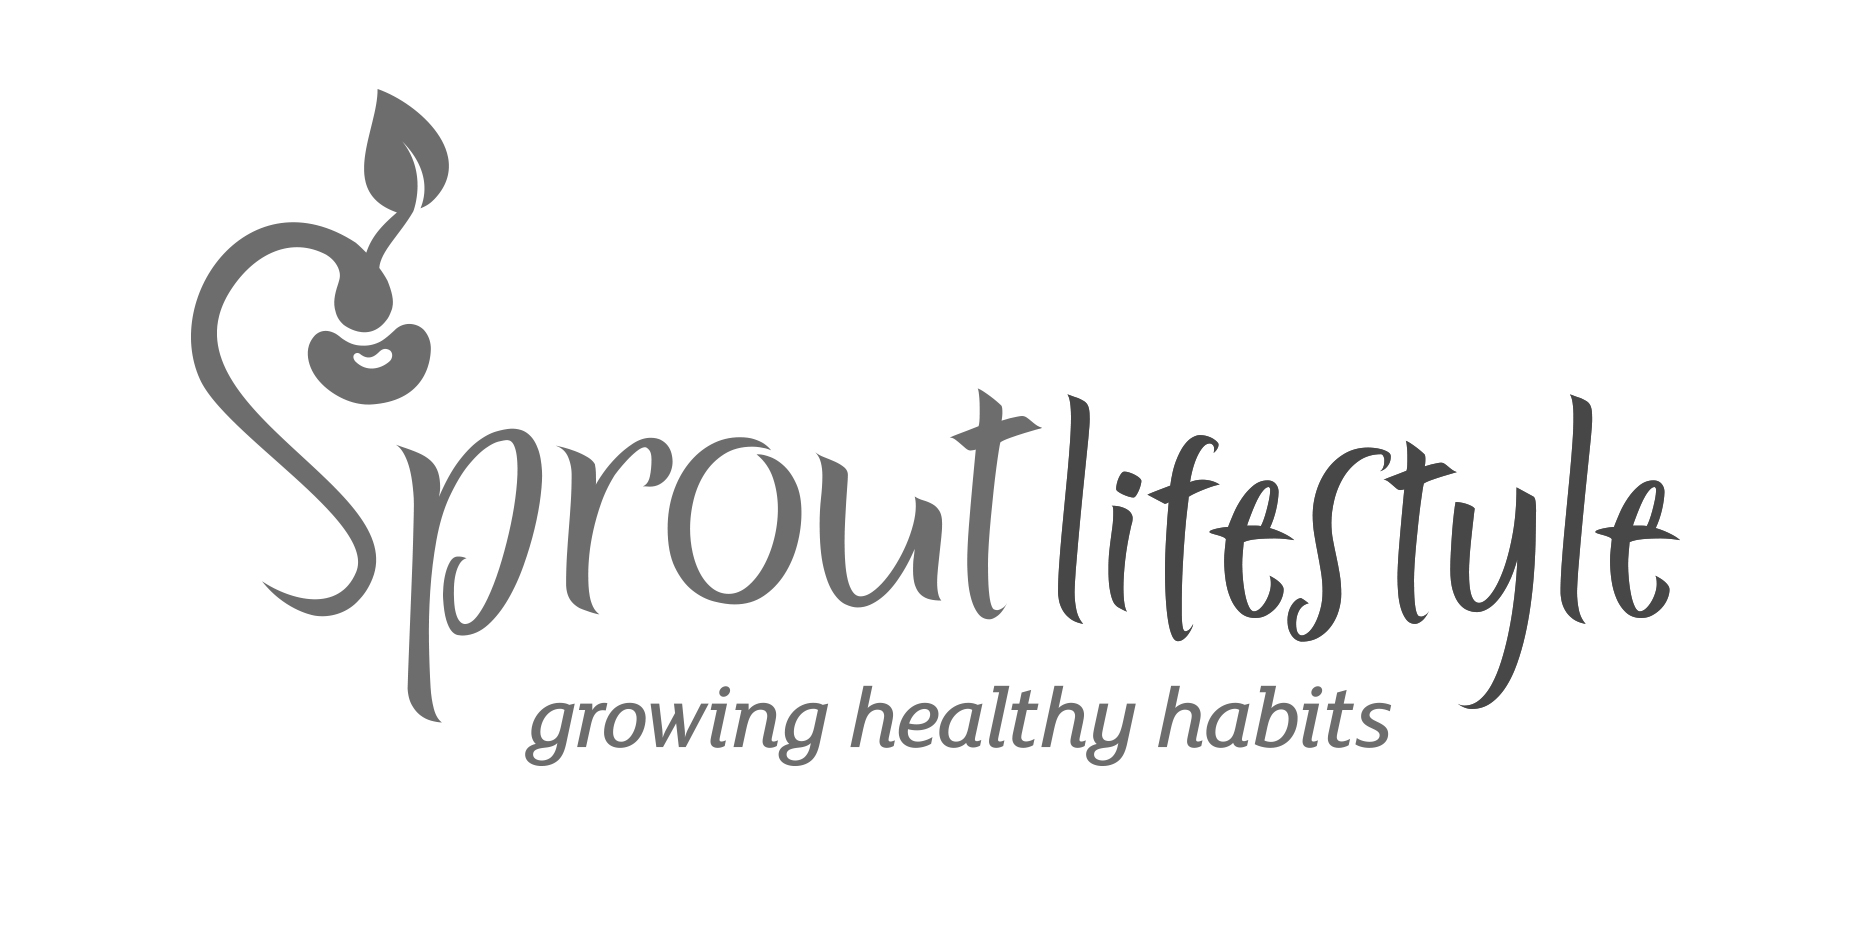 Sprout-Lifestyle bw.jpg